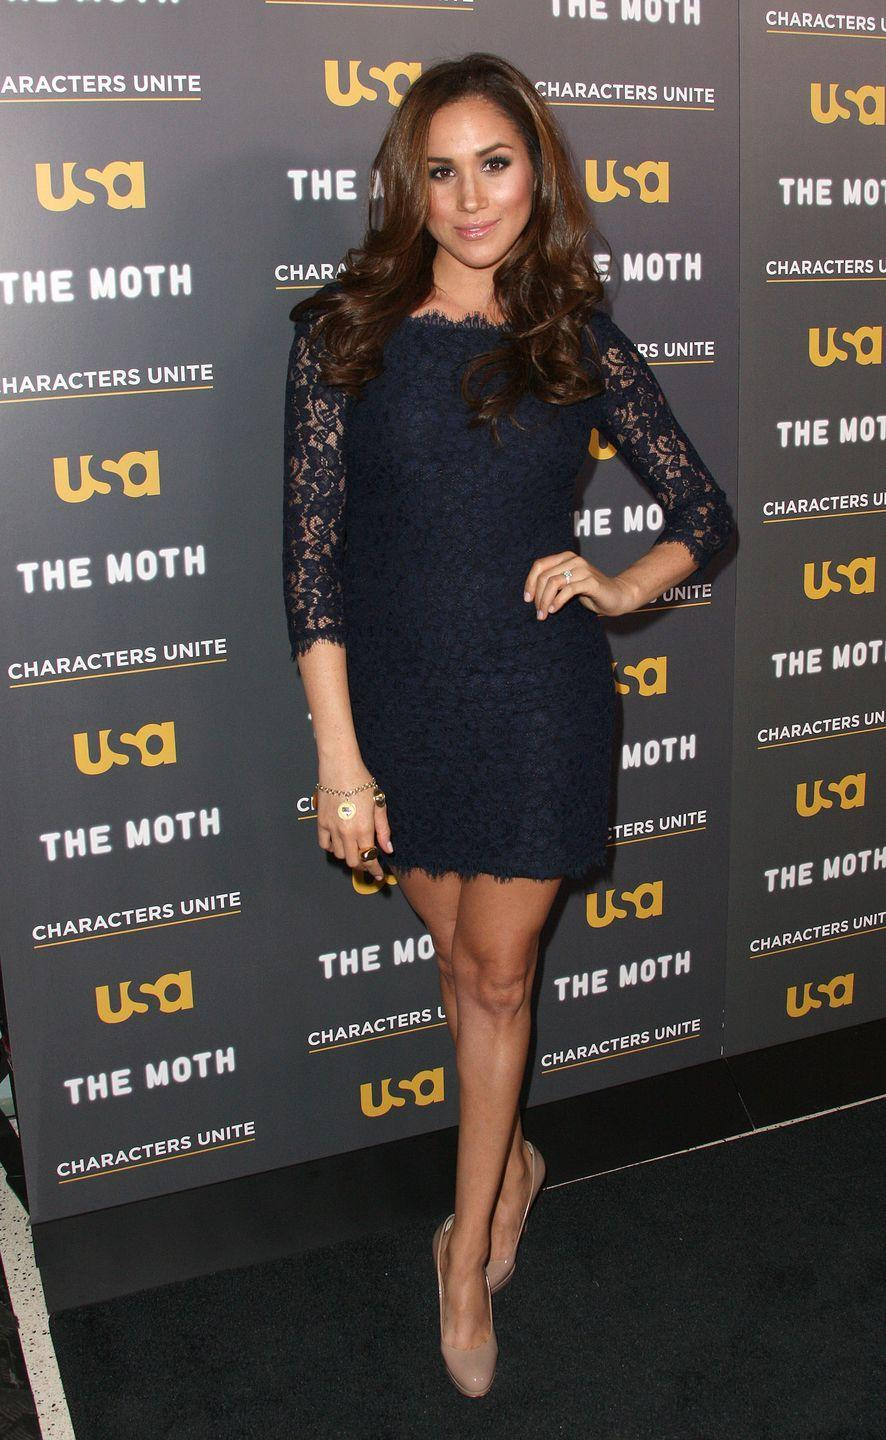 <p>Meghan wore a lacy LBD by Diane von Furstenberg at USA Network's and The Moth's Storytelling Tour 'A More Perfect Union: Stories of Prejudice and Power', in February 2012</p>